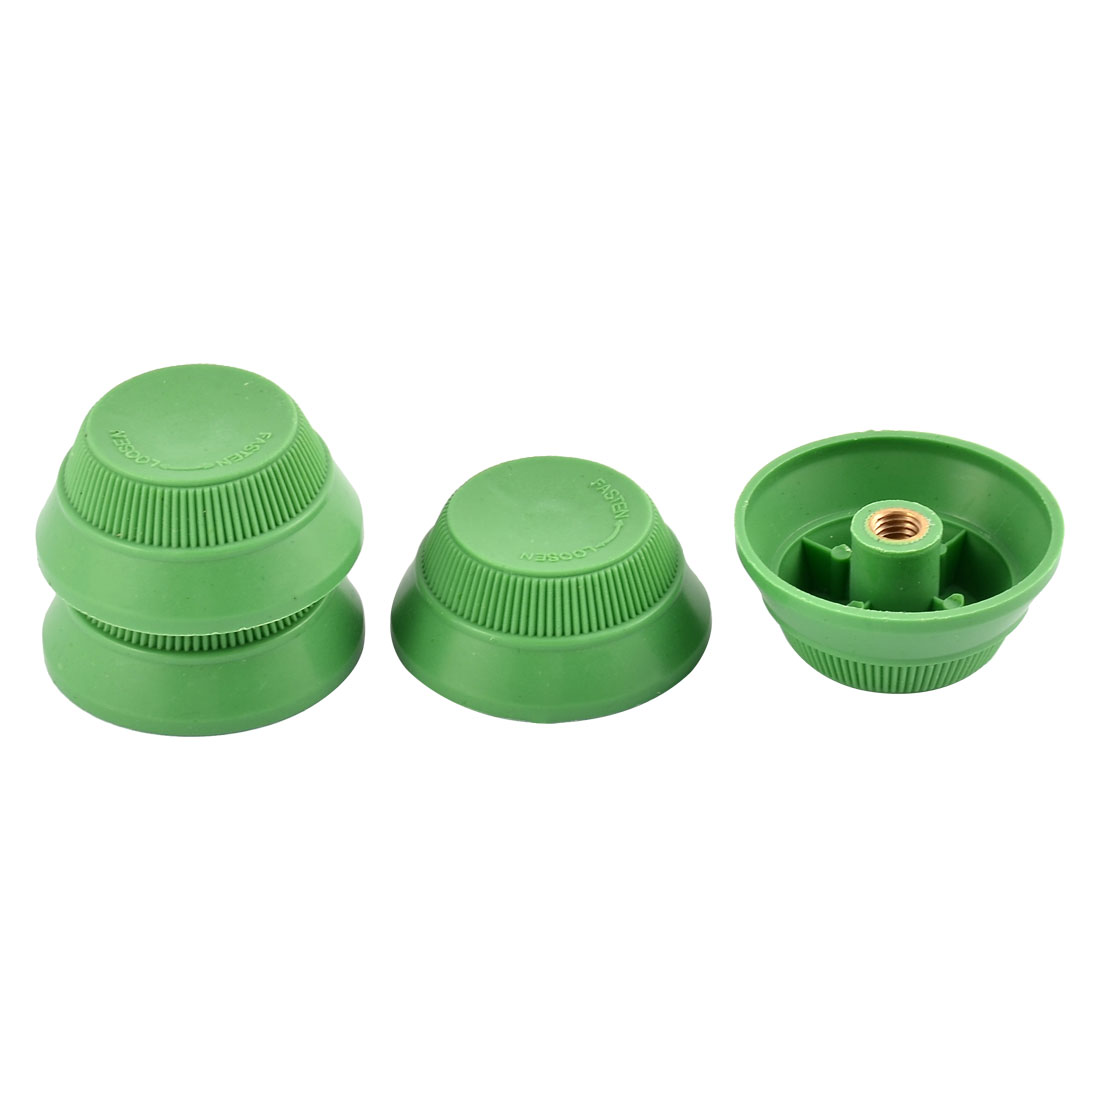 7mm Diameter Female Thread Wall Desk Fan Blade Nuts Green 4 PCS